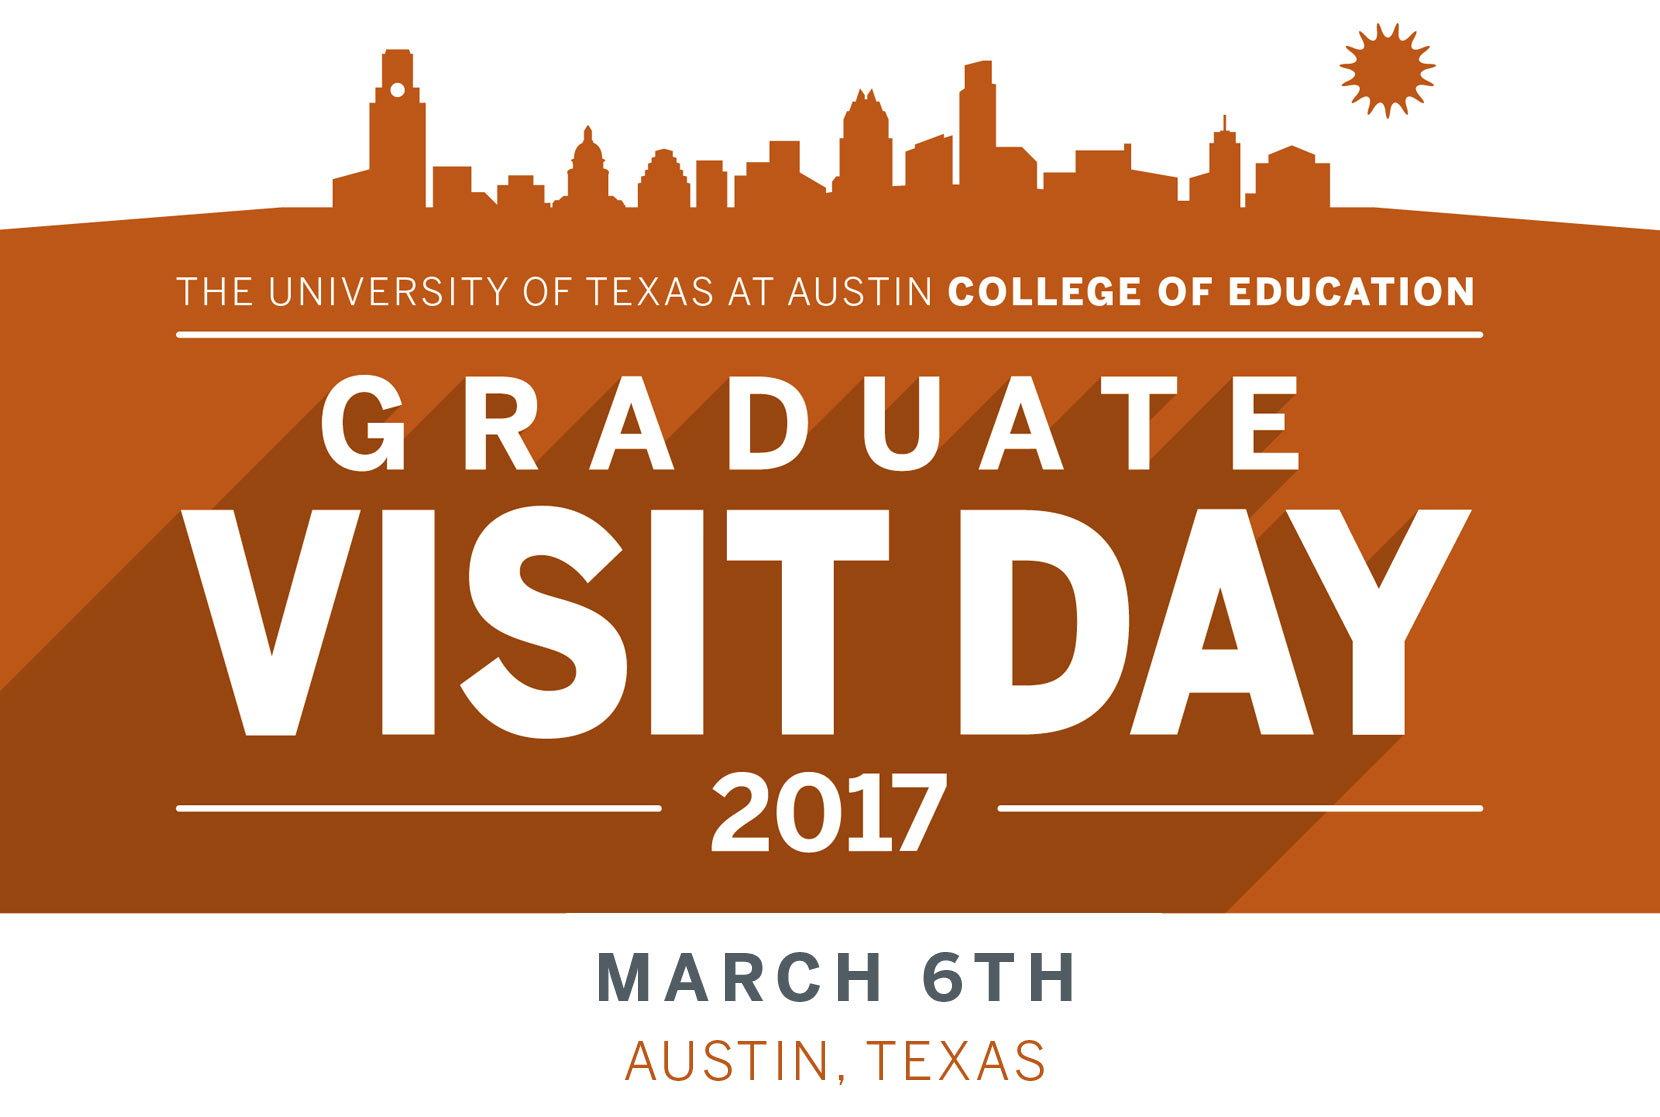 Visit Day 2017 March 6th